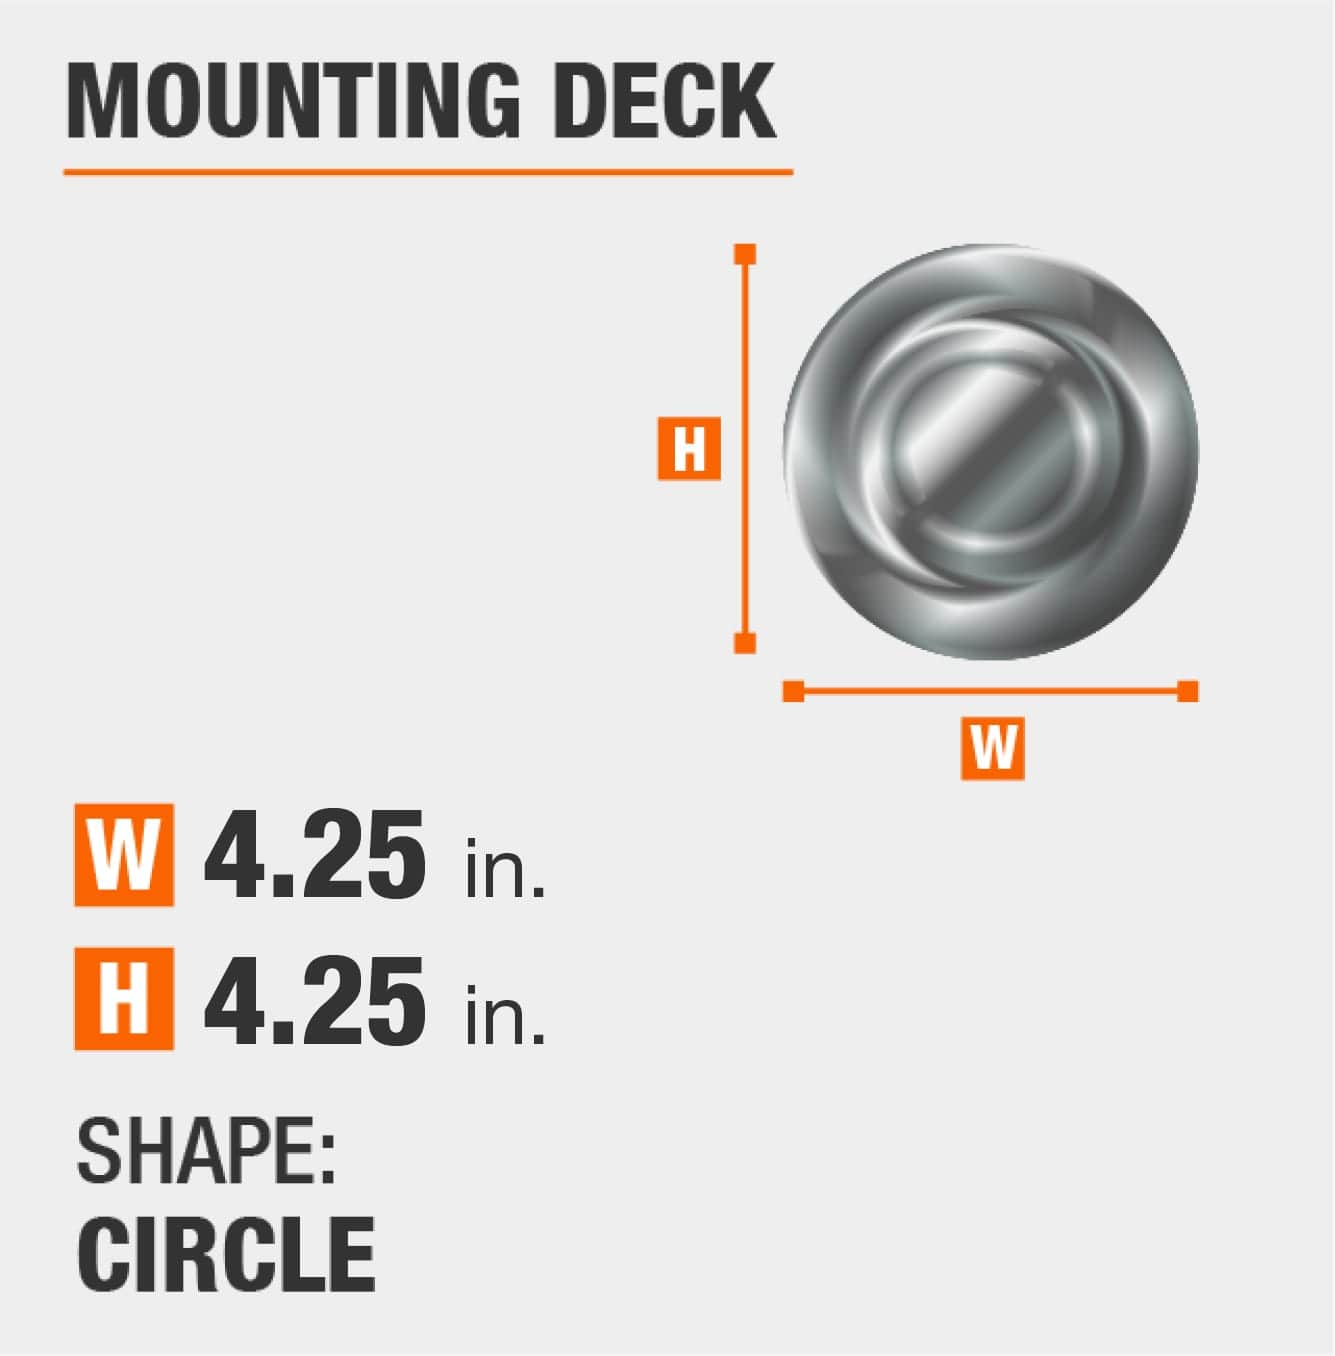 mounting deck is circular and 4.25 inches by 4.25 inches